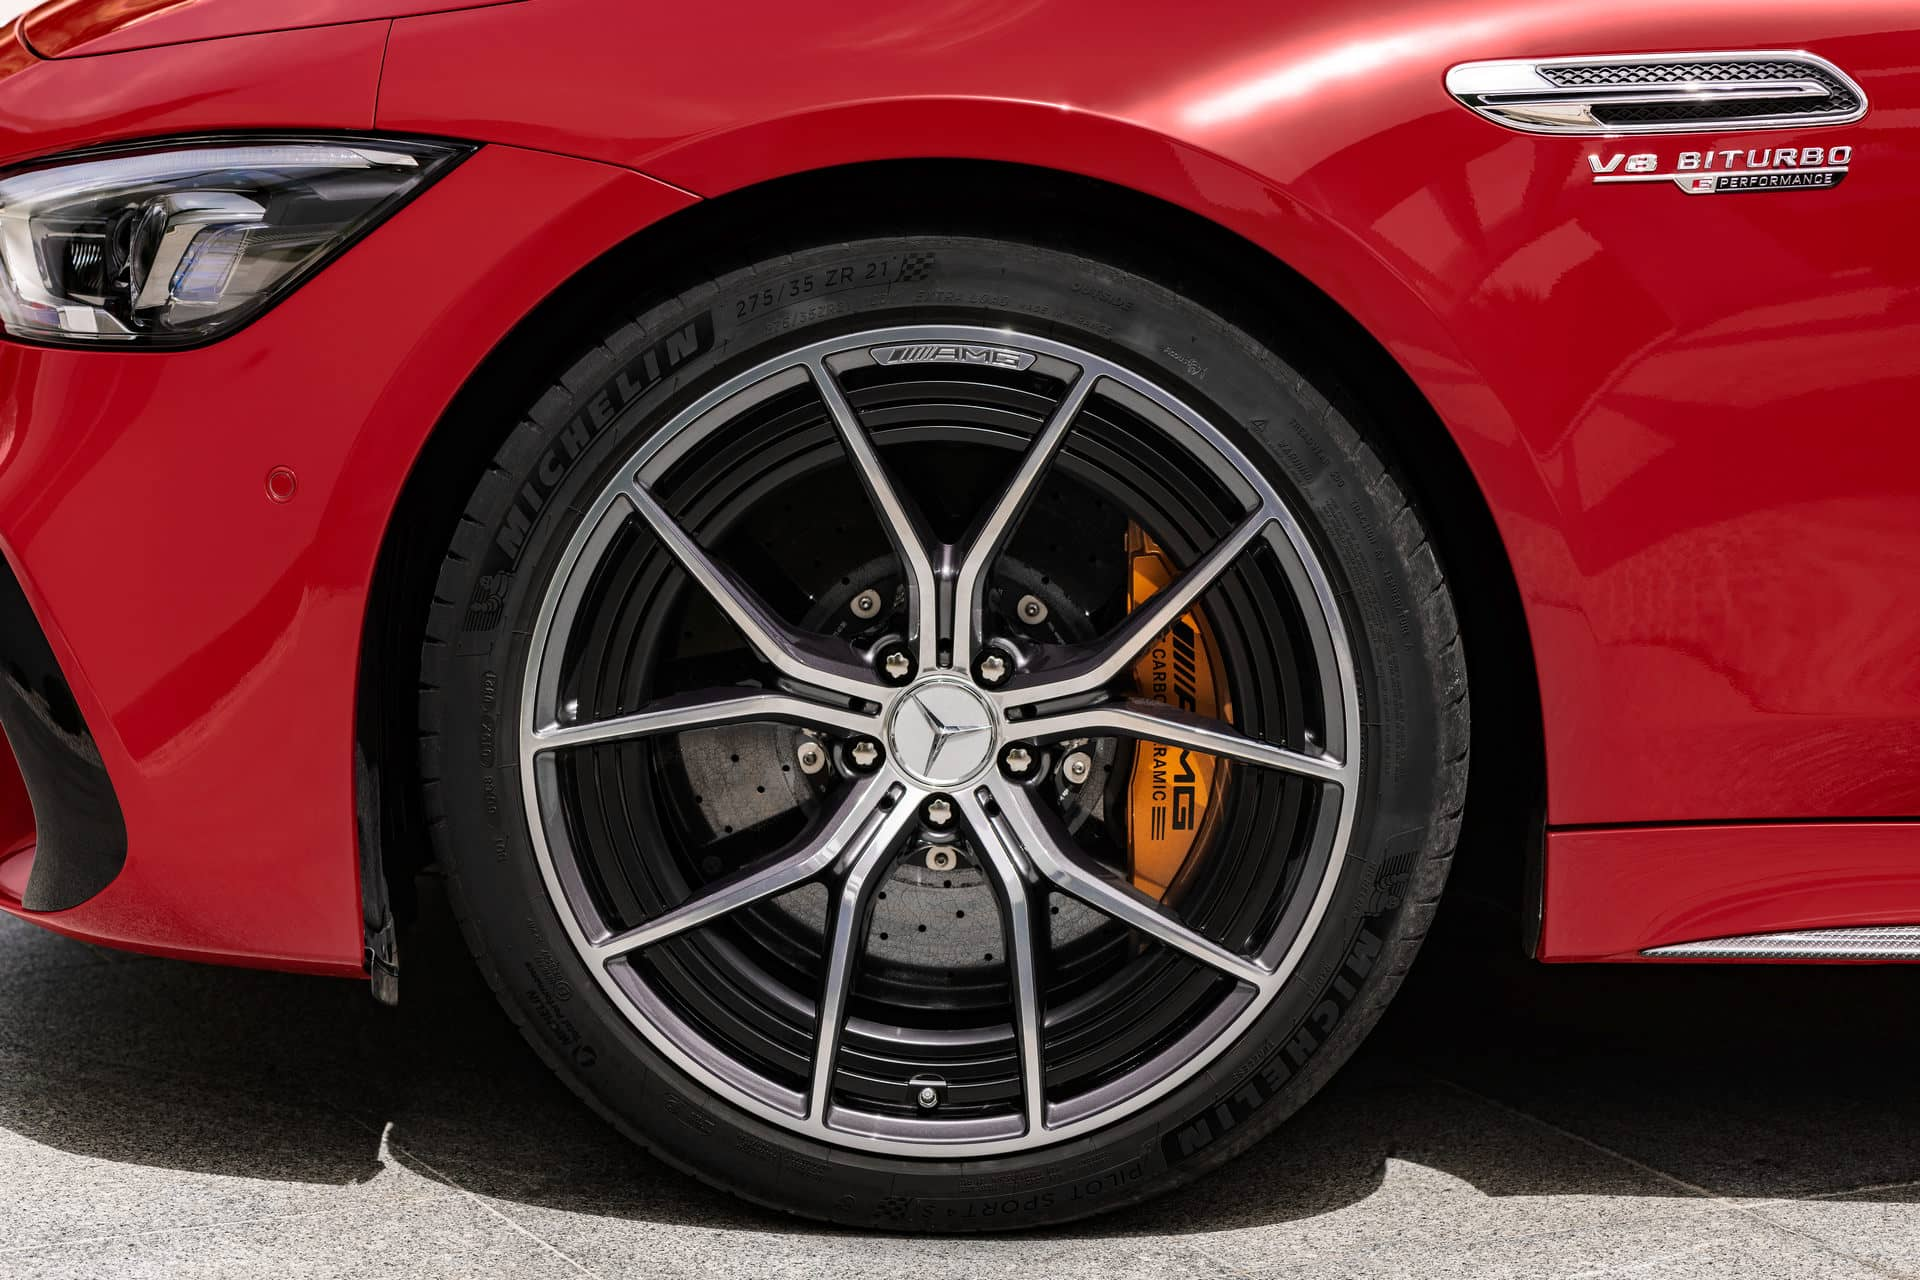 mercedes-amg gt 63 s eperformance (22)